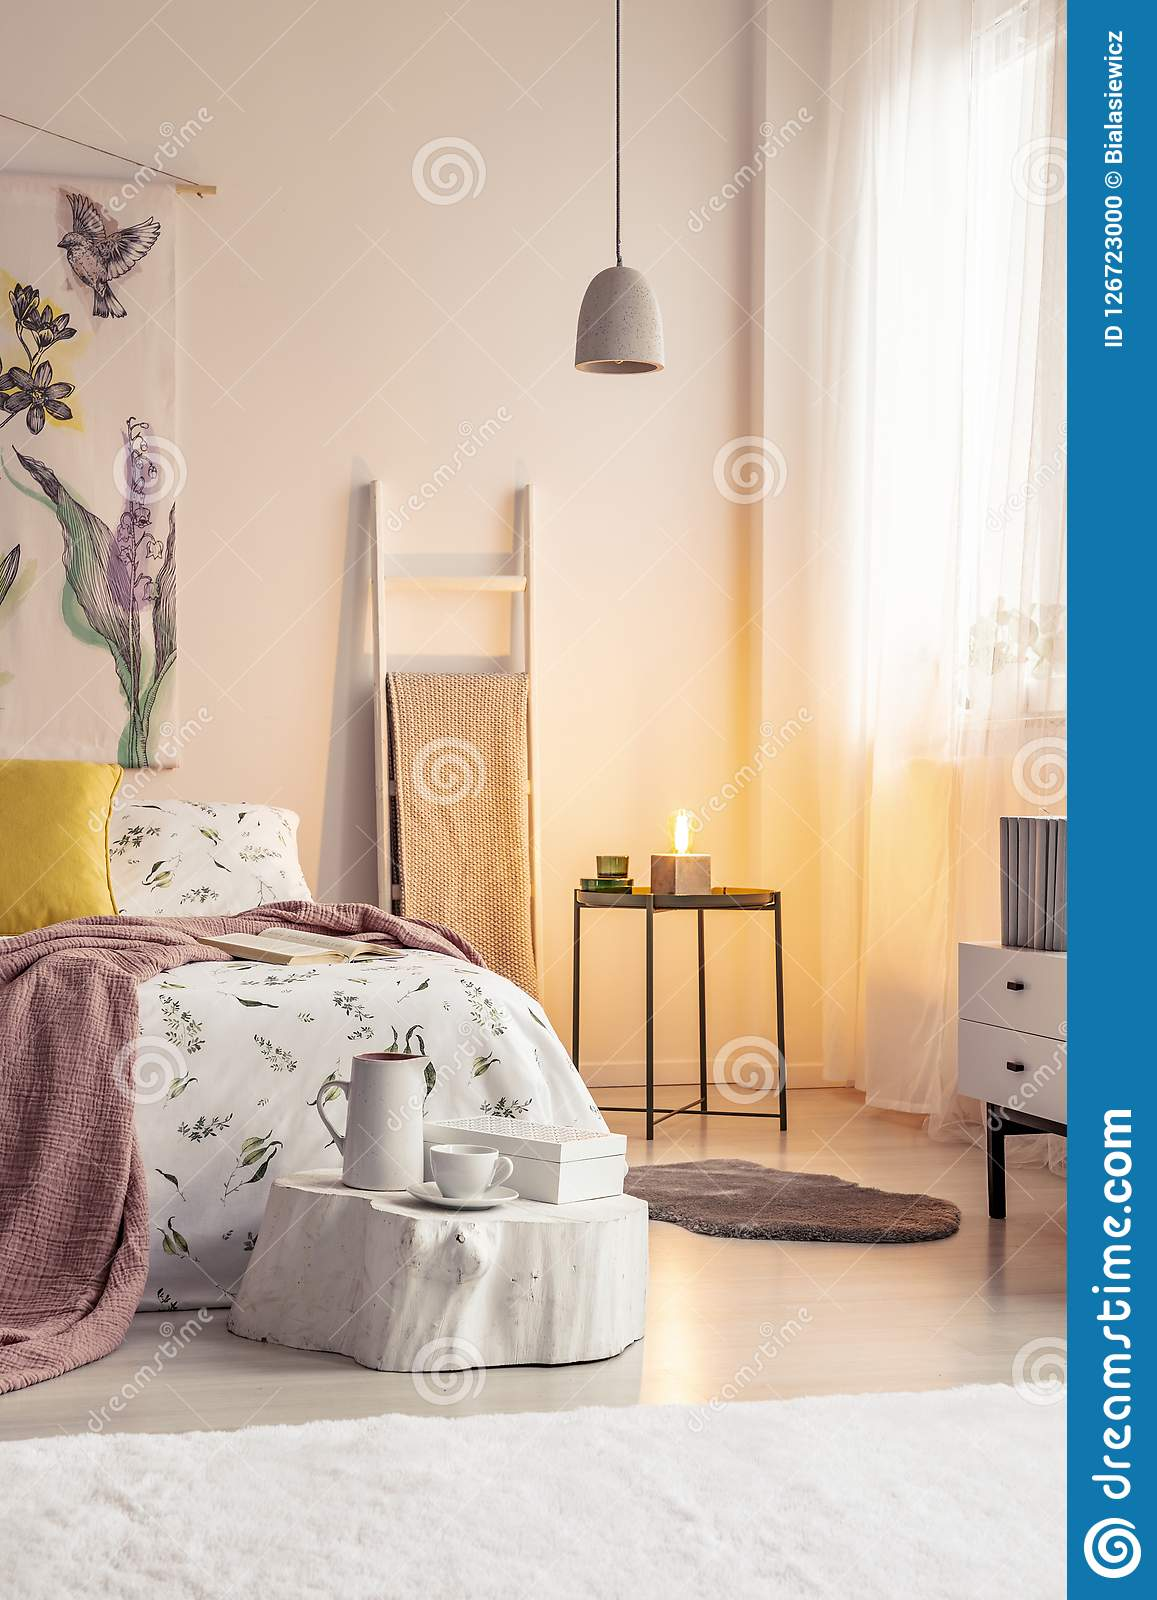 Warm lamp light in a soft colors bedroom interior with a bed dressed in bedding, cushions and blanket. Painted material art on the